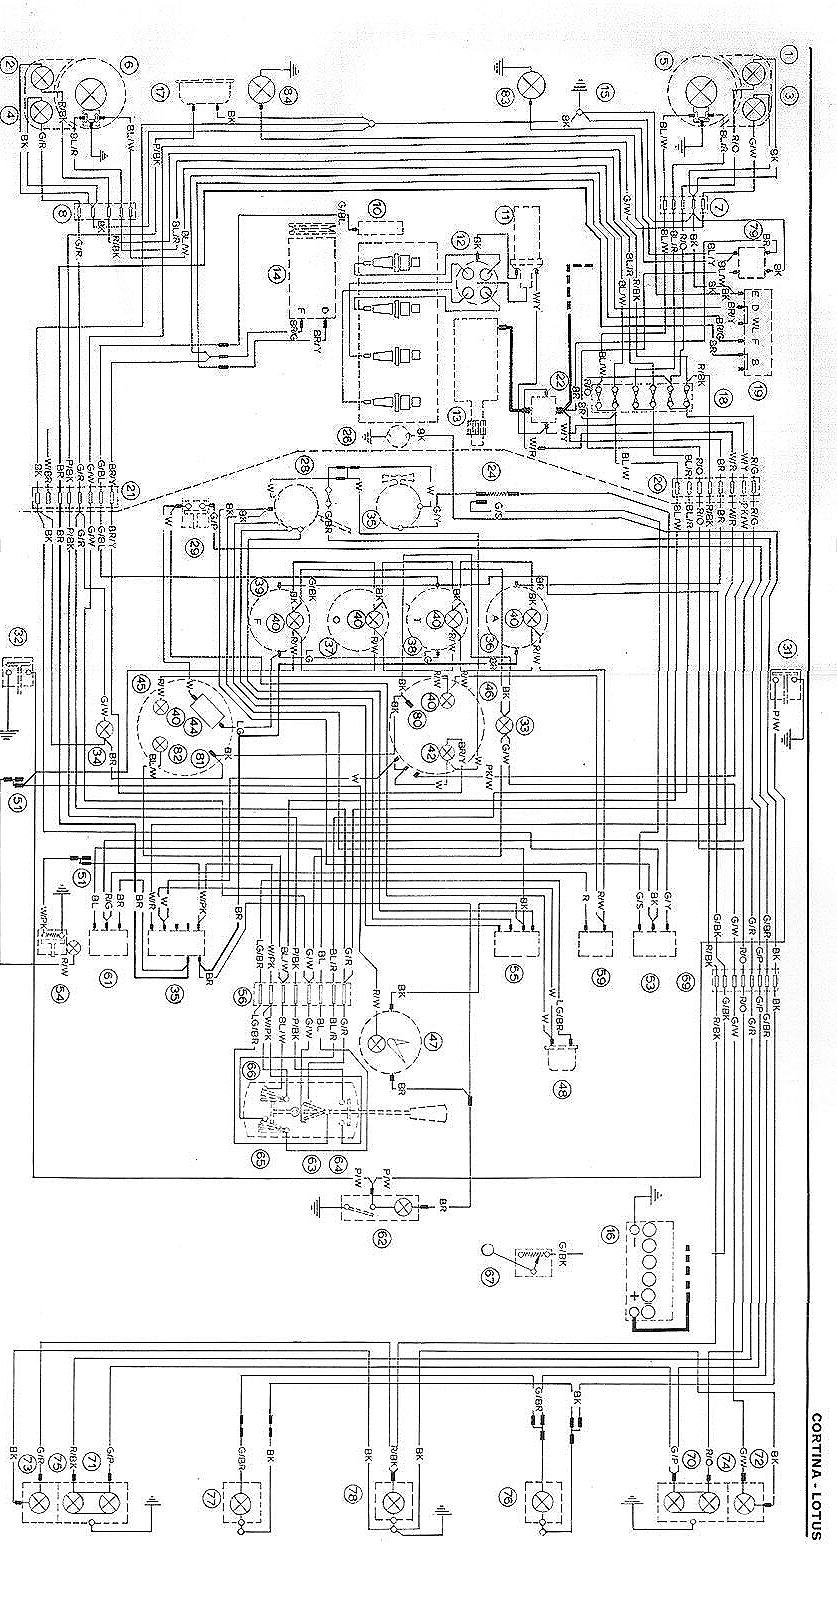 hight resolution of mk2 wiring diagram wiring diagram listmk2 wiring diagram